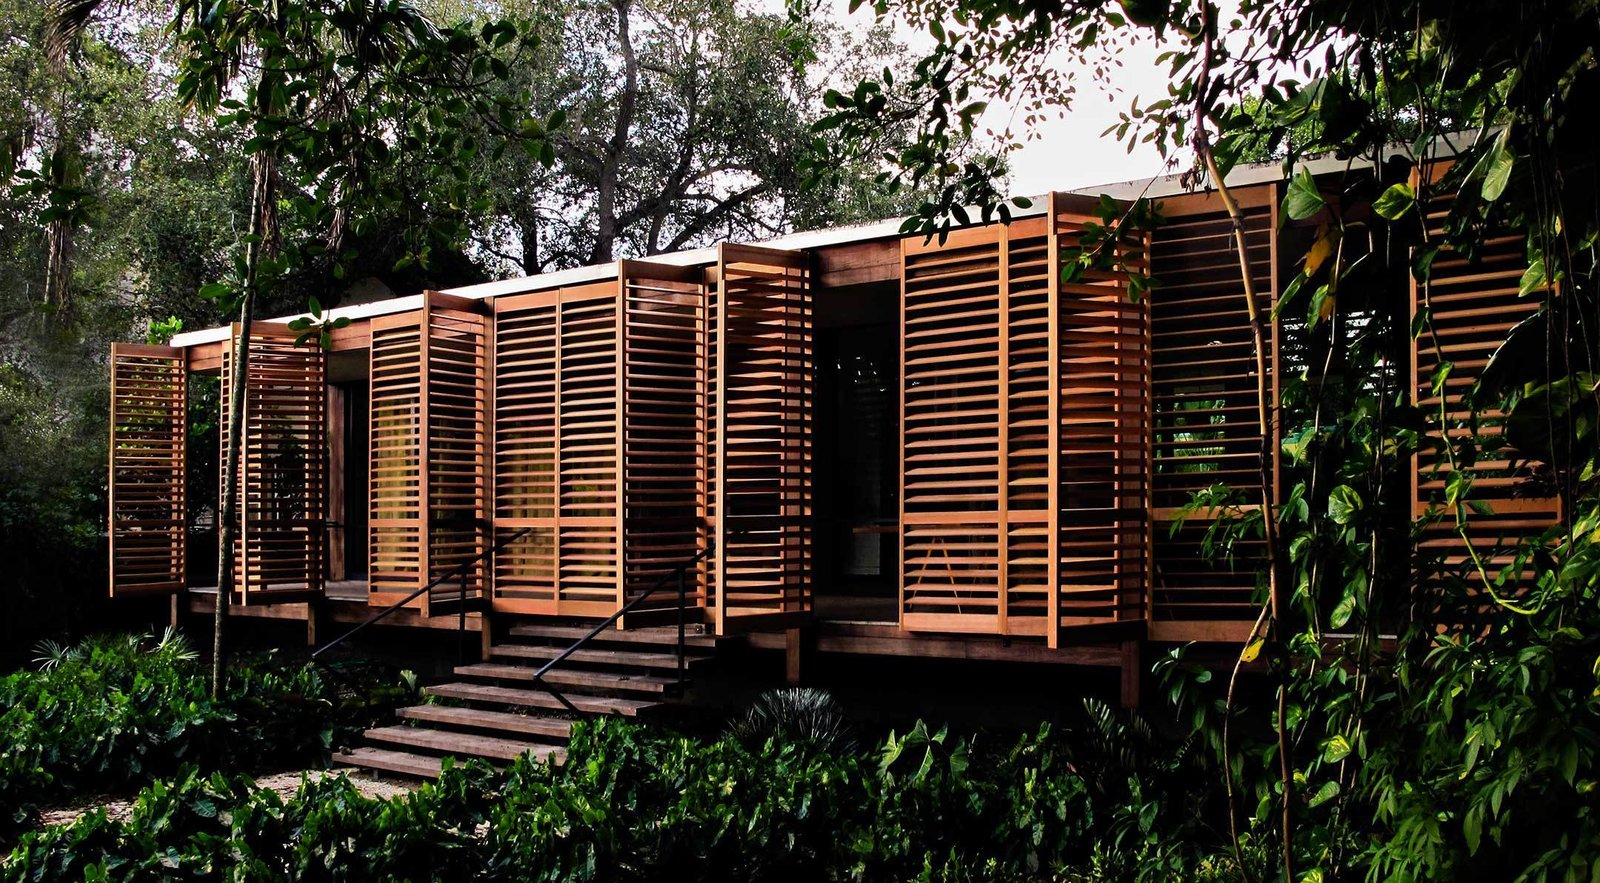 Lightweight shuttered doors made of western red cedar line the outer edge of the front porch, providing privacy and protection from the weather. The wood is left unstained, so it will age naturally in a way that's similar to the surrounding ipe wood. Just behind the shutter system, 50-feet of glass walls broken into four sets of sliding panels open to eliminate the barriers between indoor and outdoor spaces. Tagged: Exterior, House, Wood Siding Material, and Flat RoofLine.  Brillhart House by Emma Janzen